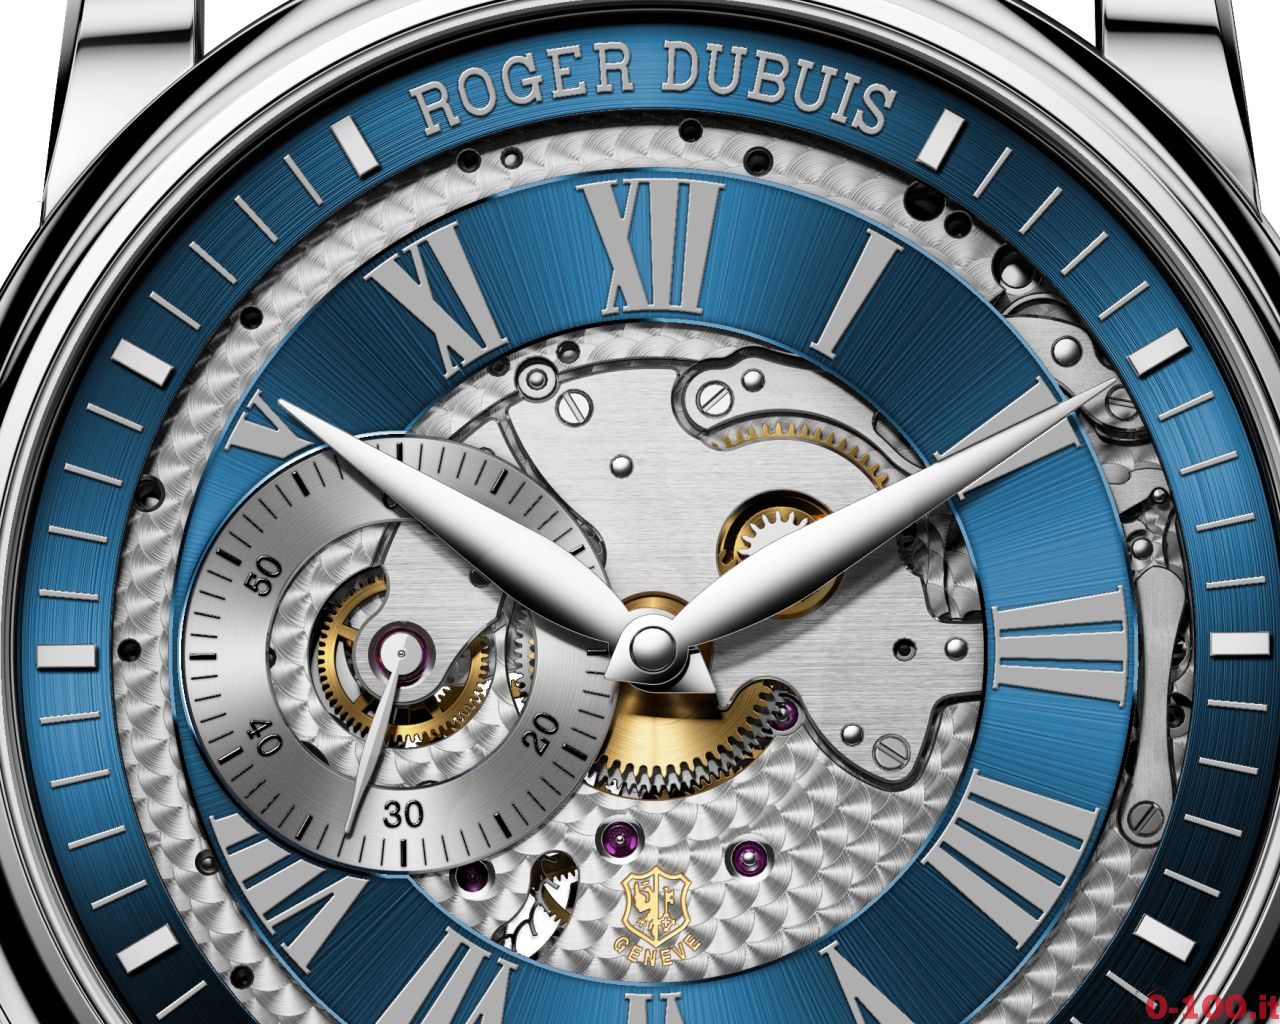 roger-dubuis-hommage-open-dial-limited-edition-prezzo-price_0-1003